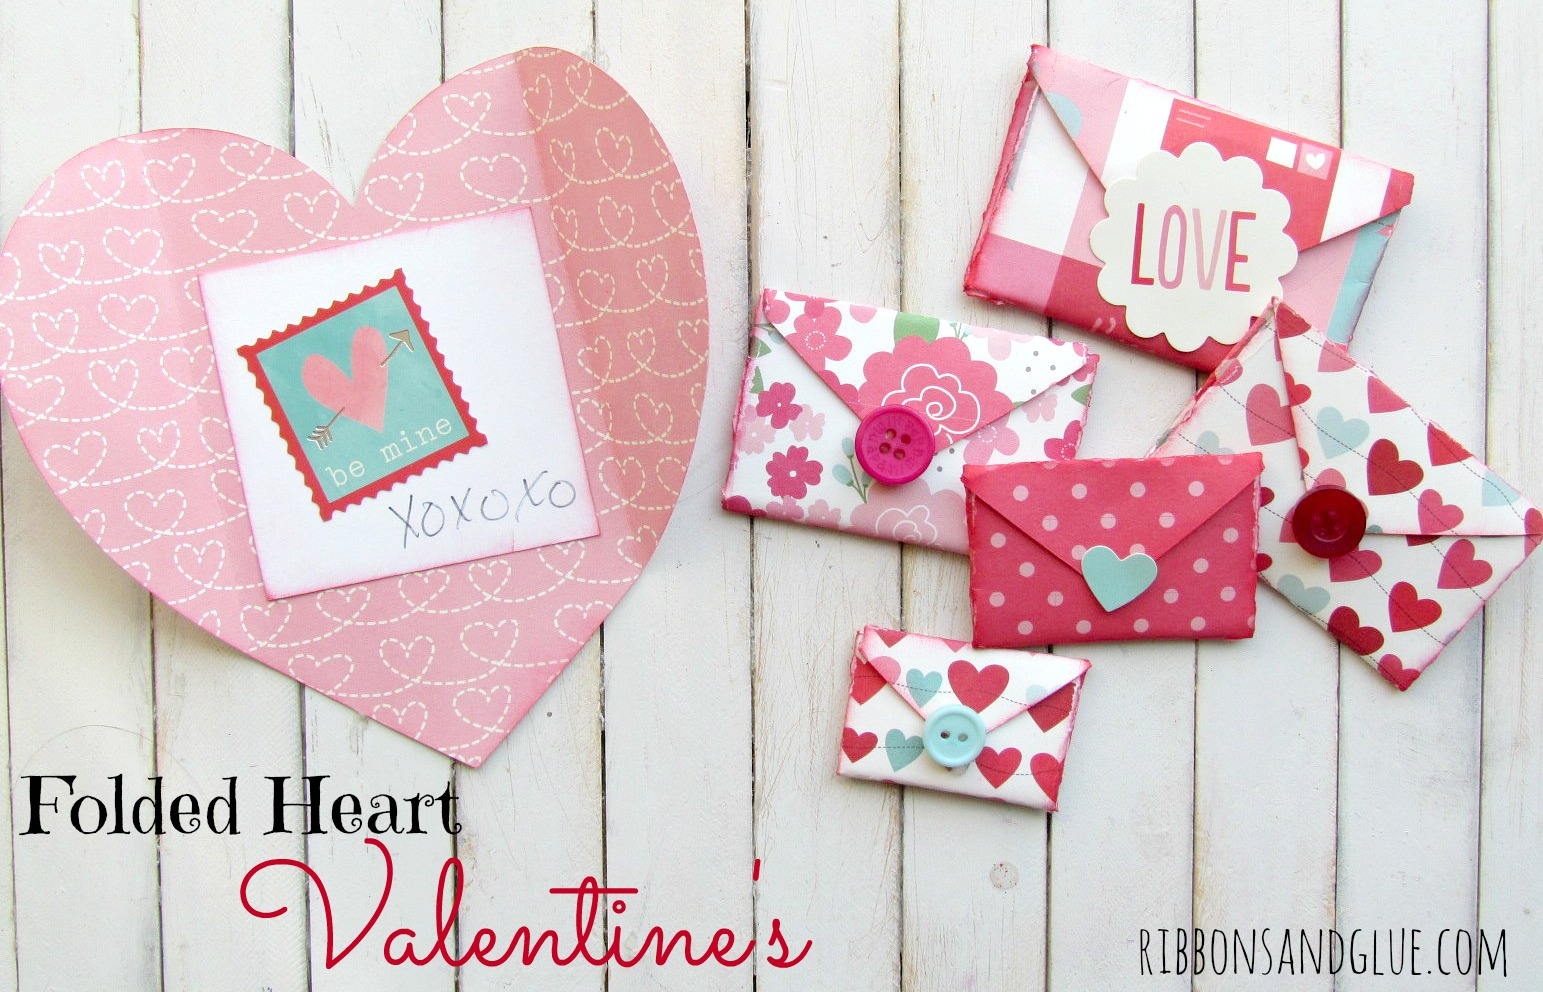 Quick and easy crafts valentines craft lightning day 1 and 2 quick and easy crafts valentines craft lightning day 1 and 2 round up the country chic cottage jeuxipadfo Gallery